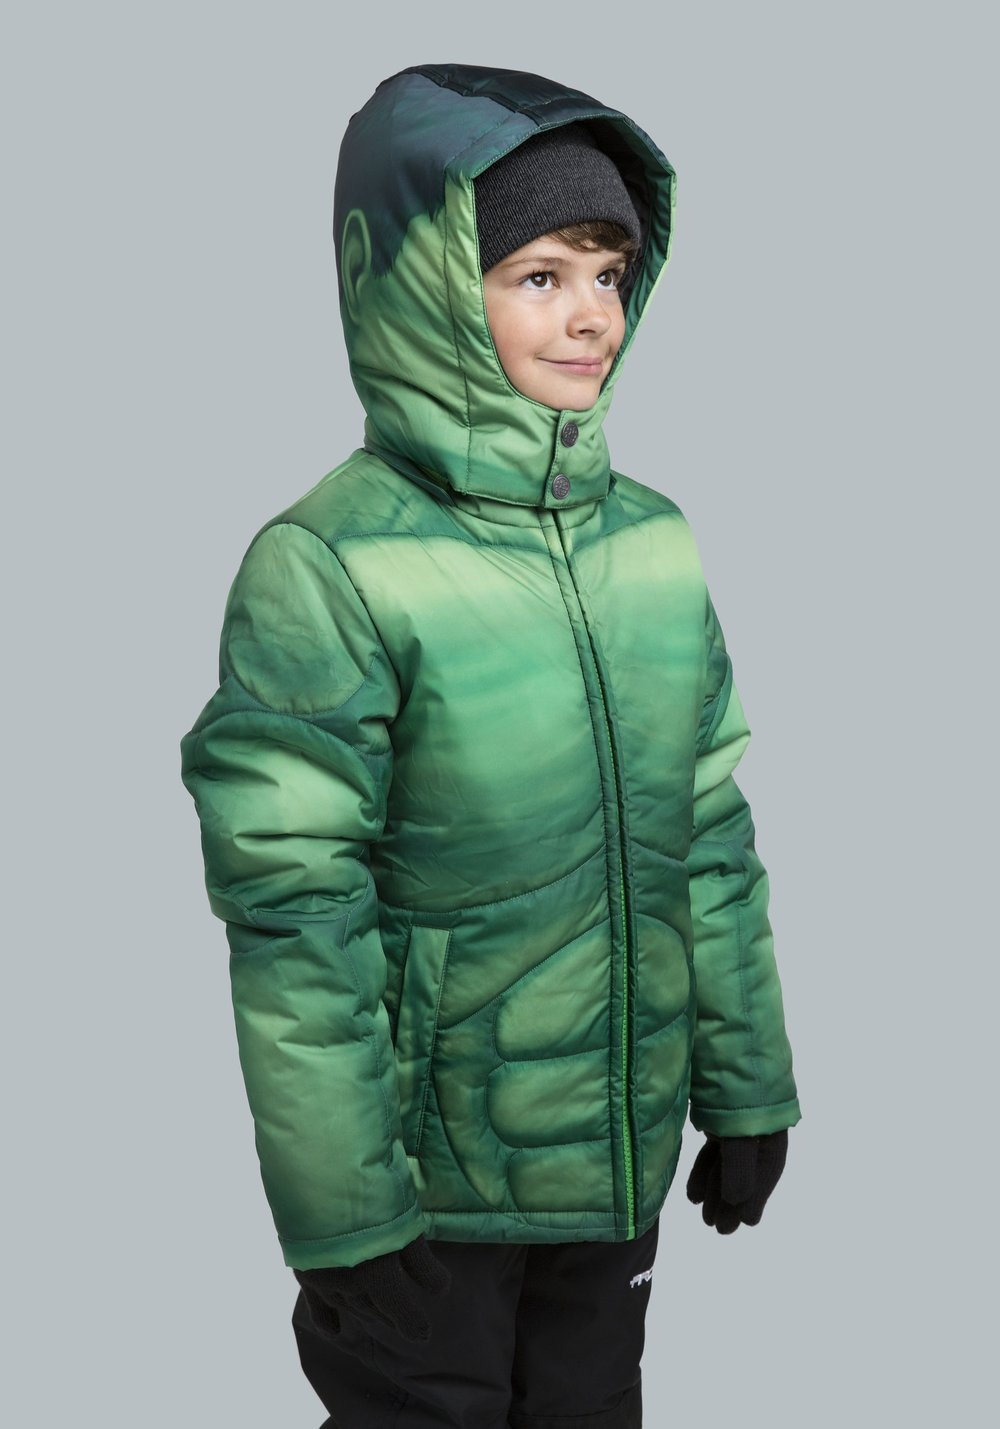 kidsincredible-hulk-pufferjacket (1).jpg